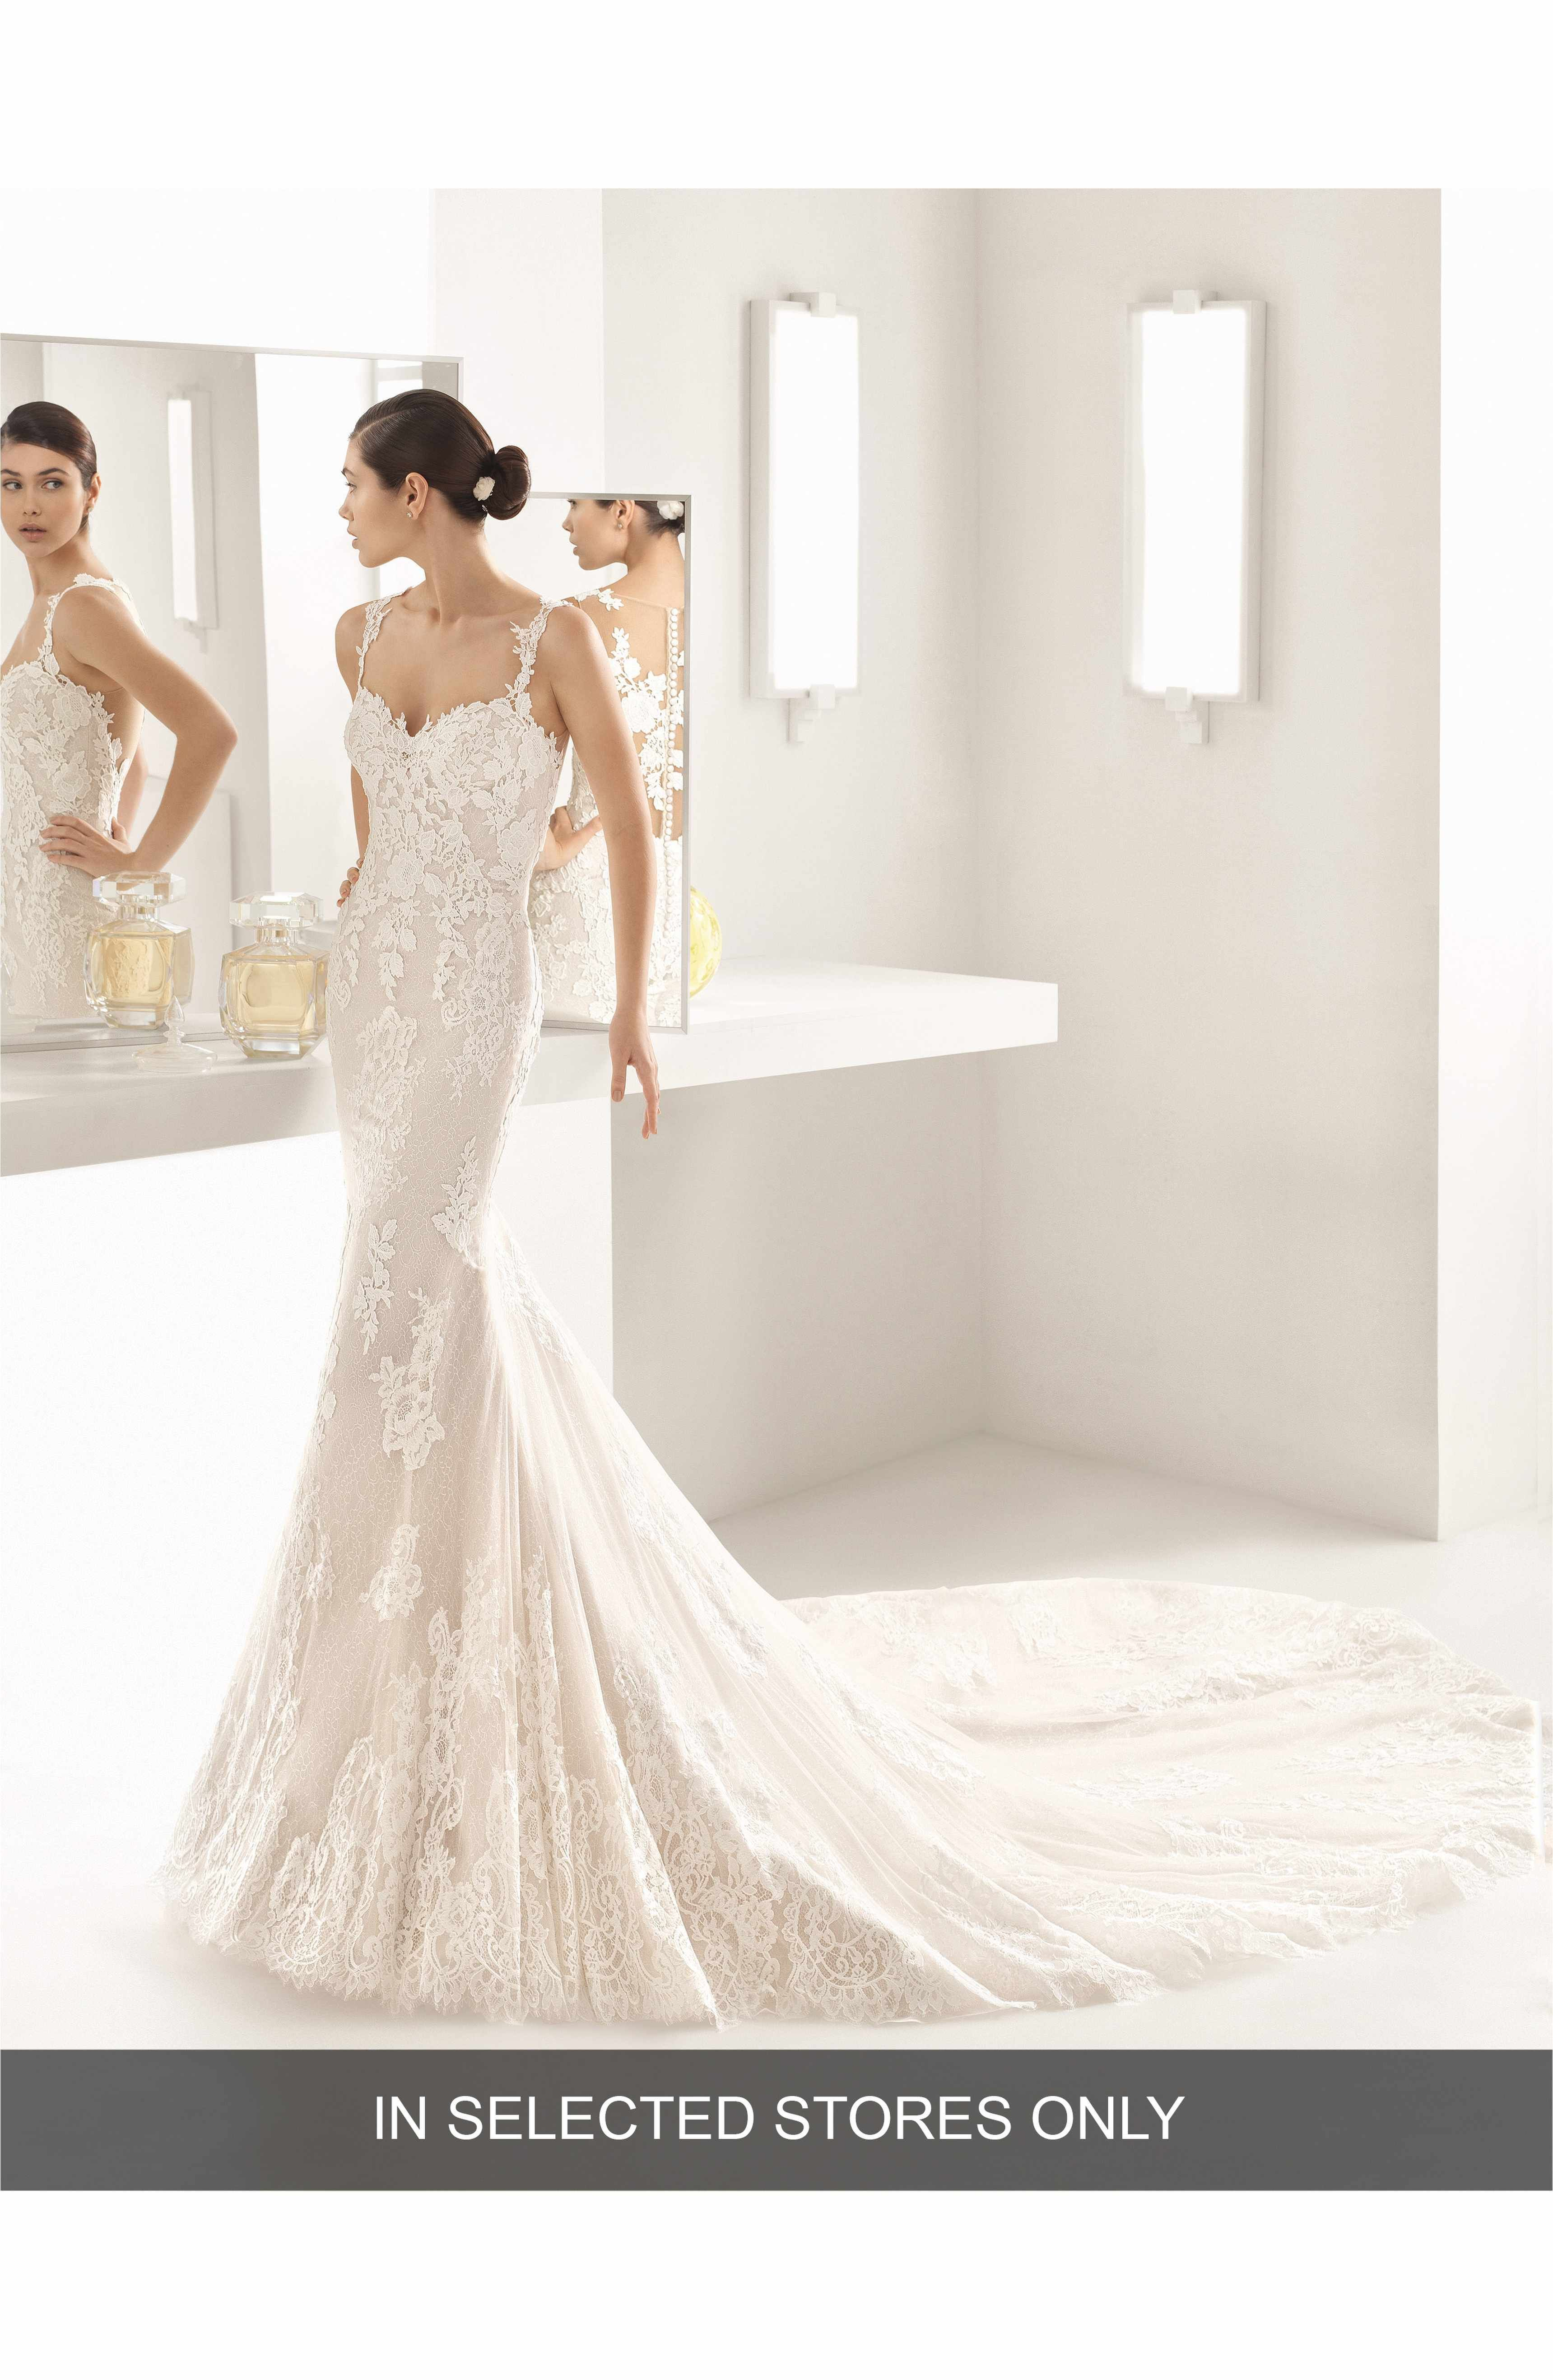 Oboe Sleeveless Lace Mermaid Gown   Oboe, Lace mermaid and Rosa clara